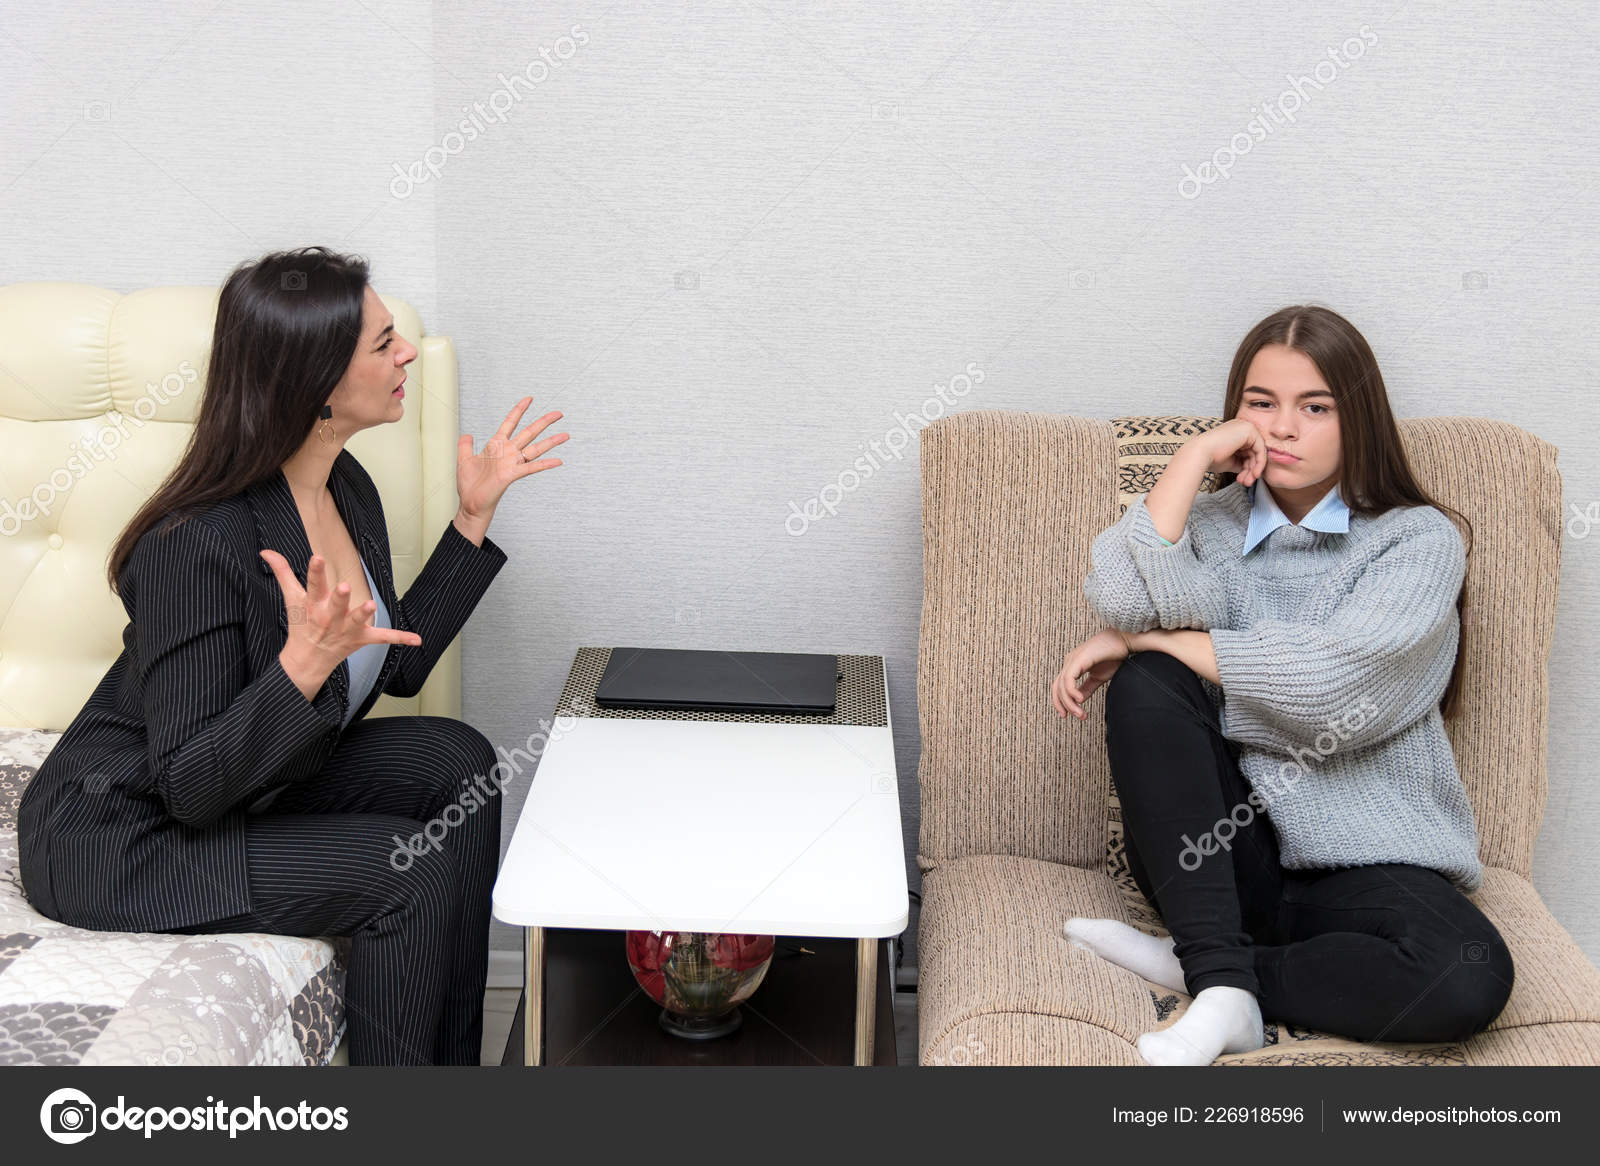 Join. mother teen daughter relationships things, speaks) pity